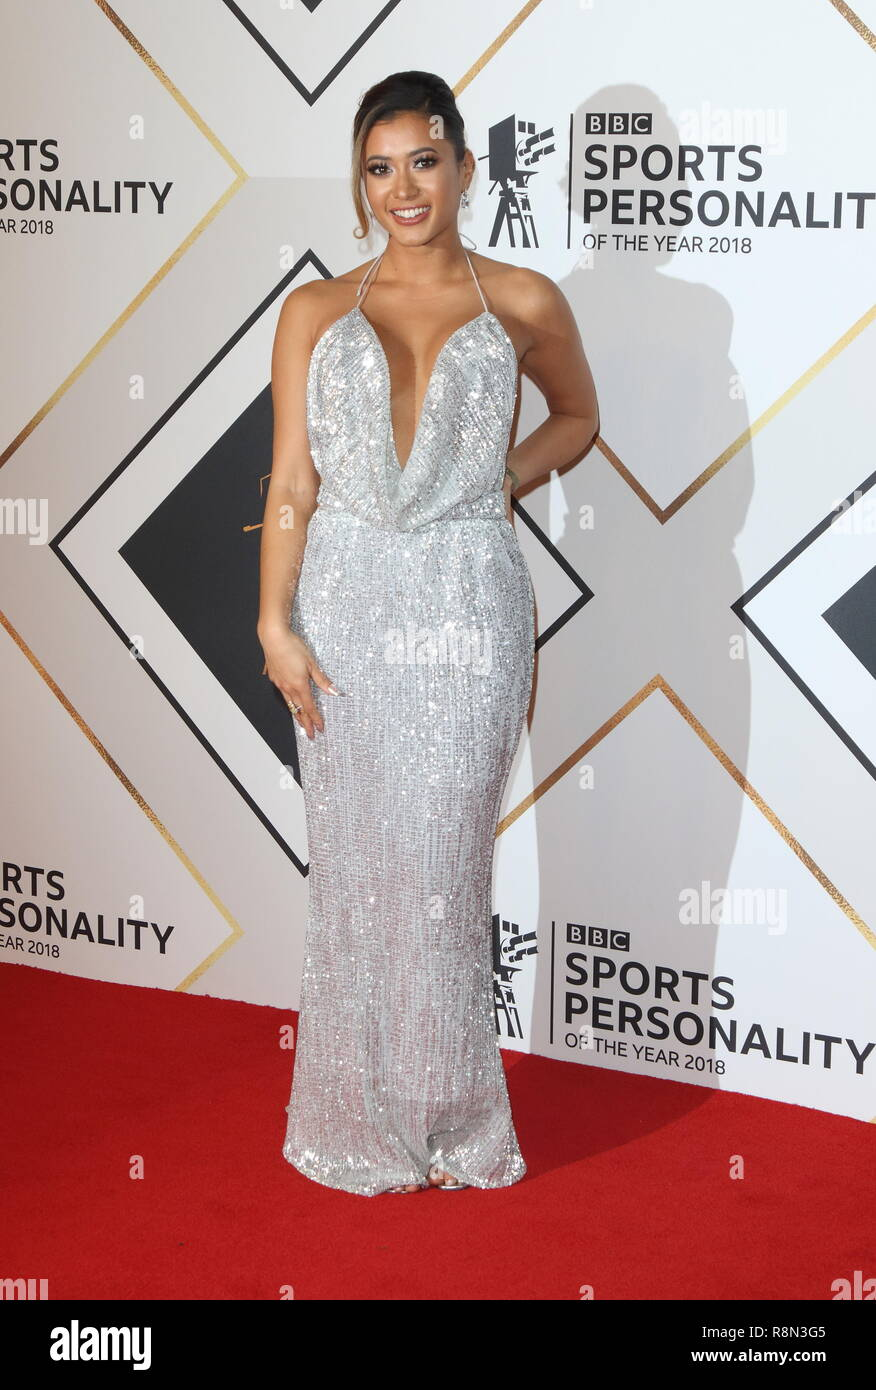 Kaz Crossley on the red carpet at the BBC Sports Personality Of The Year 2018 at the Resorts World Arena. - Stock Image